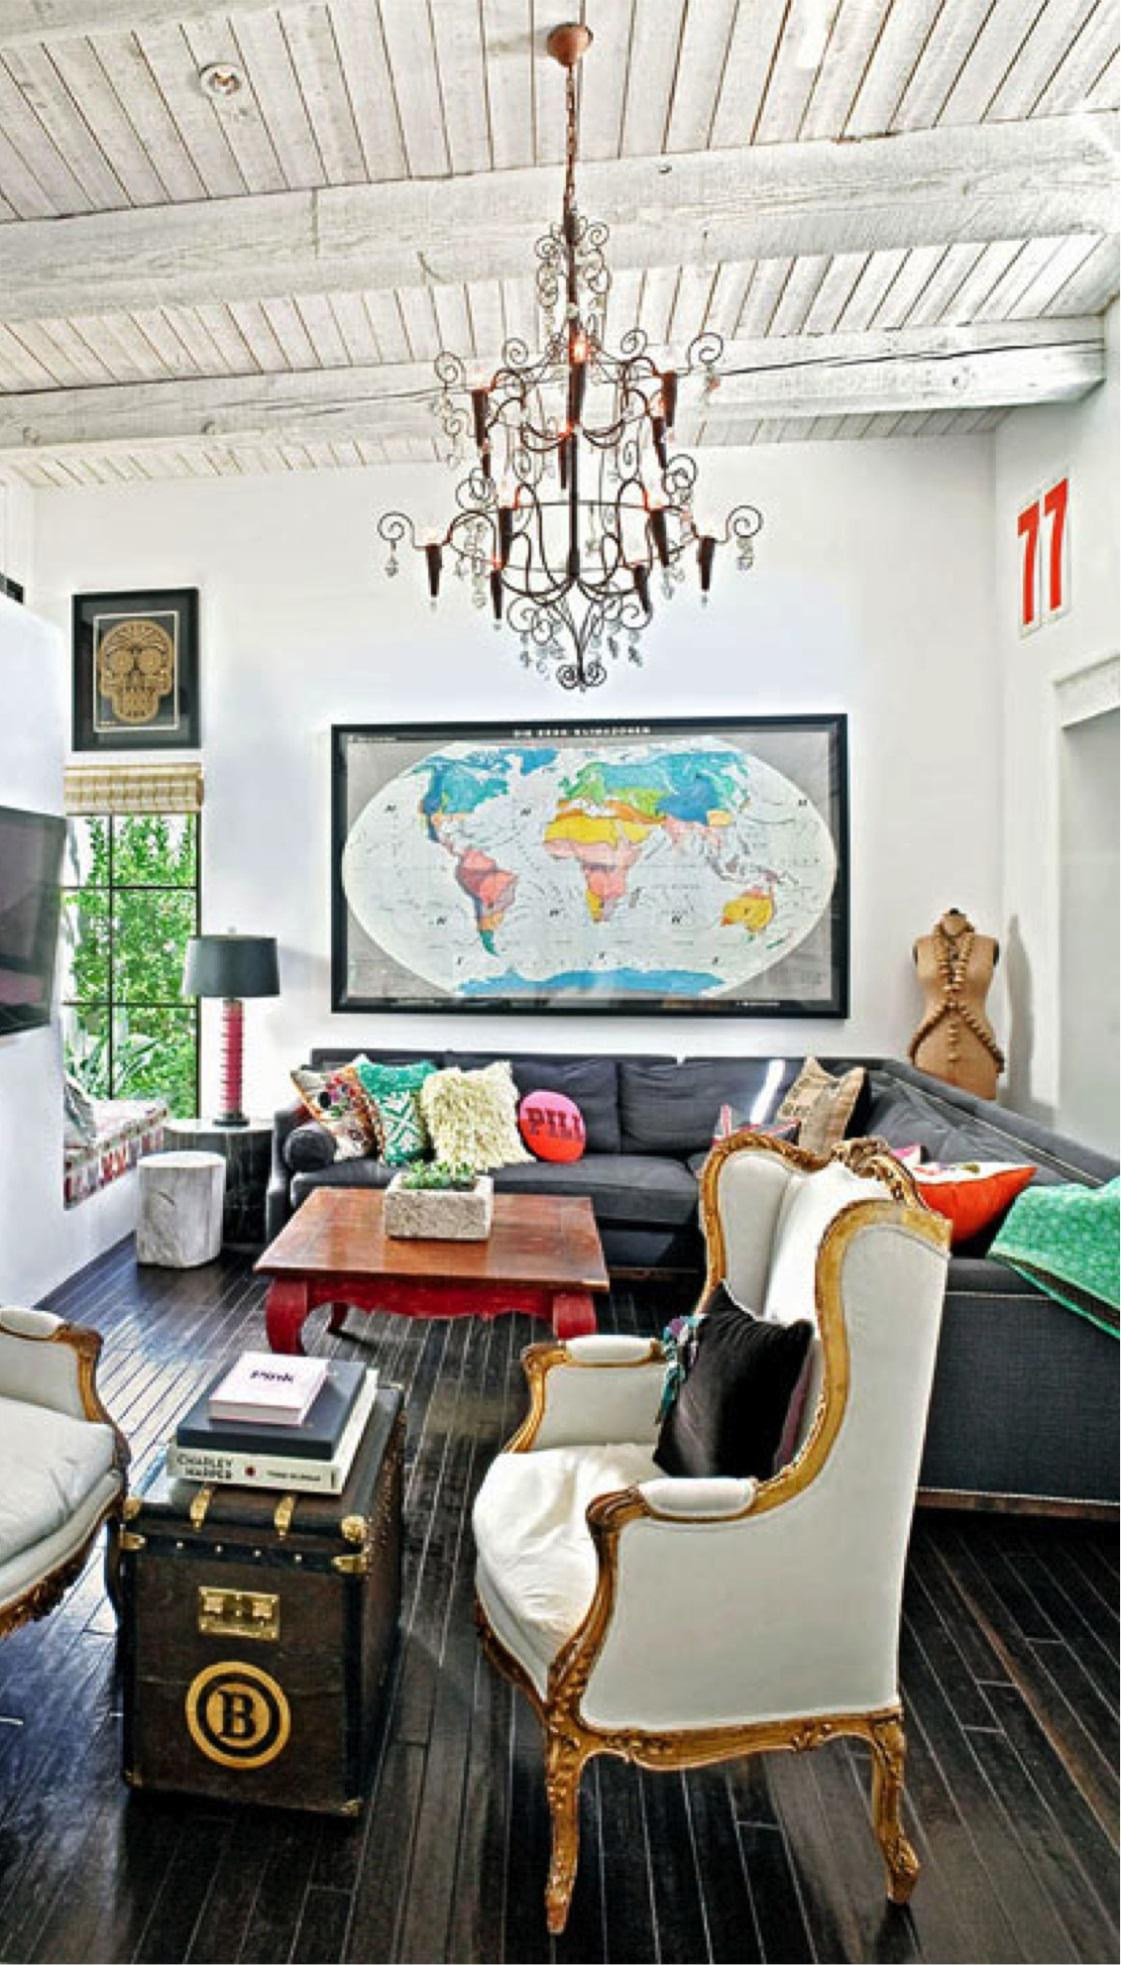 Eclectic Design eclectic décor: blending antique and modern items - interior